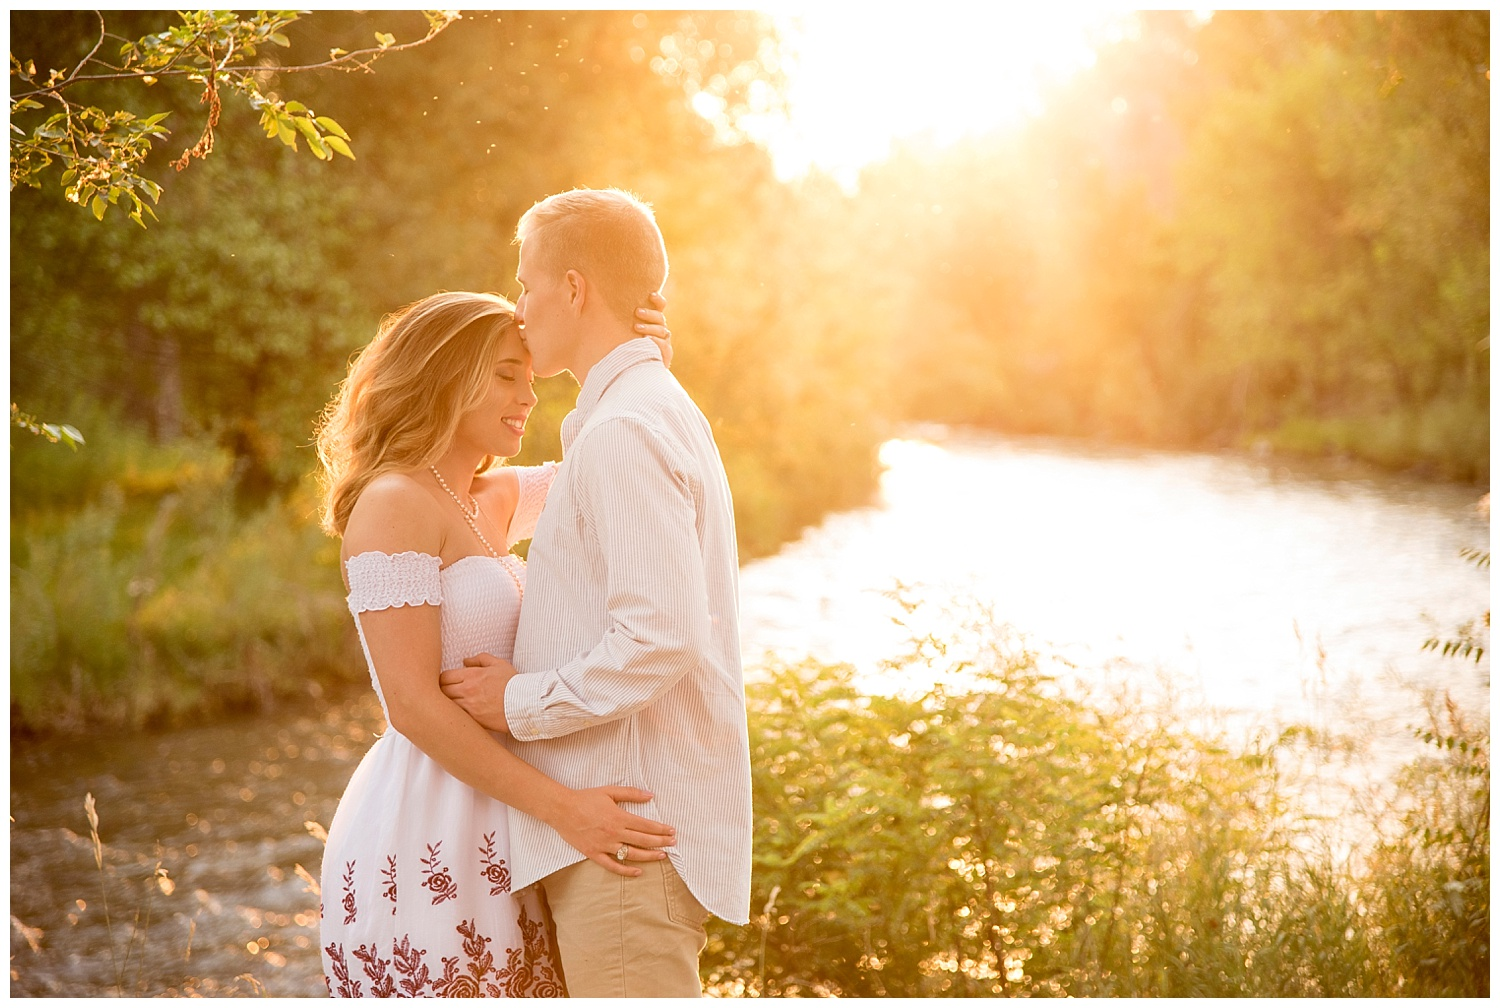 Sunset_Farm_Engagement_Session_Inspiration_Photography_Wildflowers_River_Colorado_Photography_Denver_010.jpg